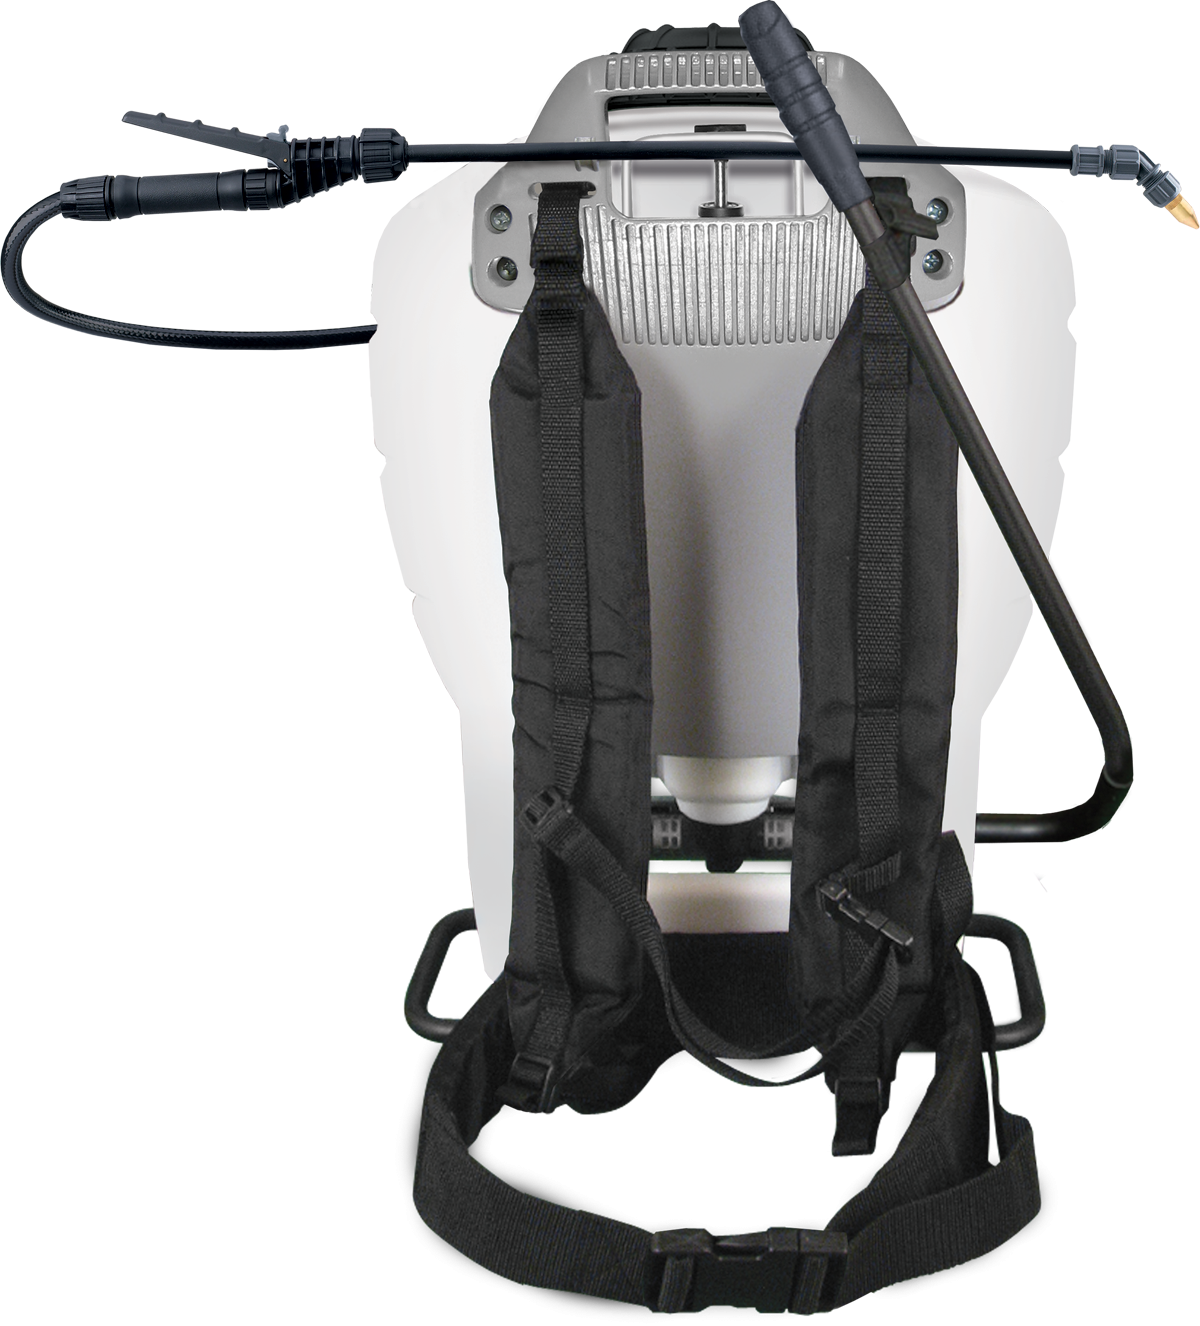 Roundup Pro® 190412 No Leak Pump Backpack Sprayer